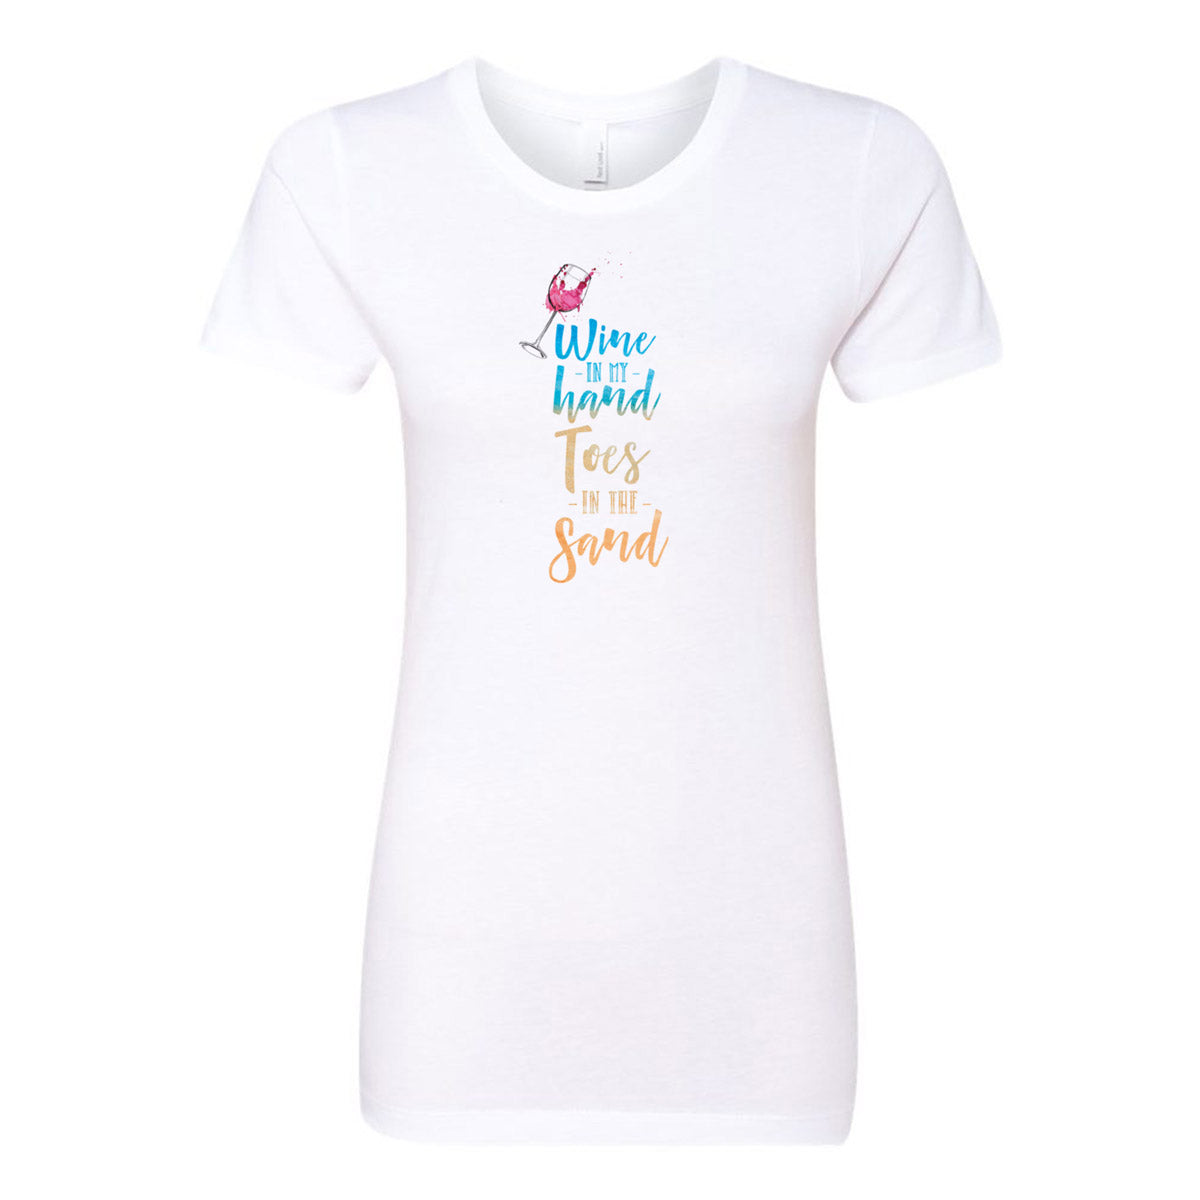 Wine in my Hand Toes in the Sand Ladies' Boyfriend T-Shirt